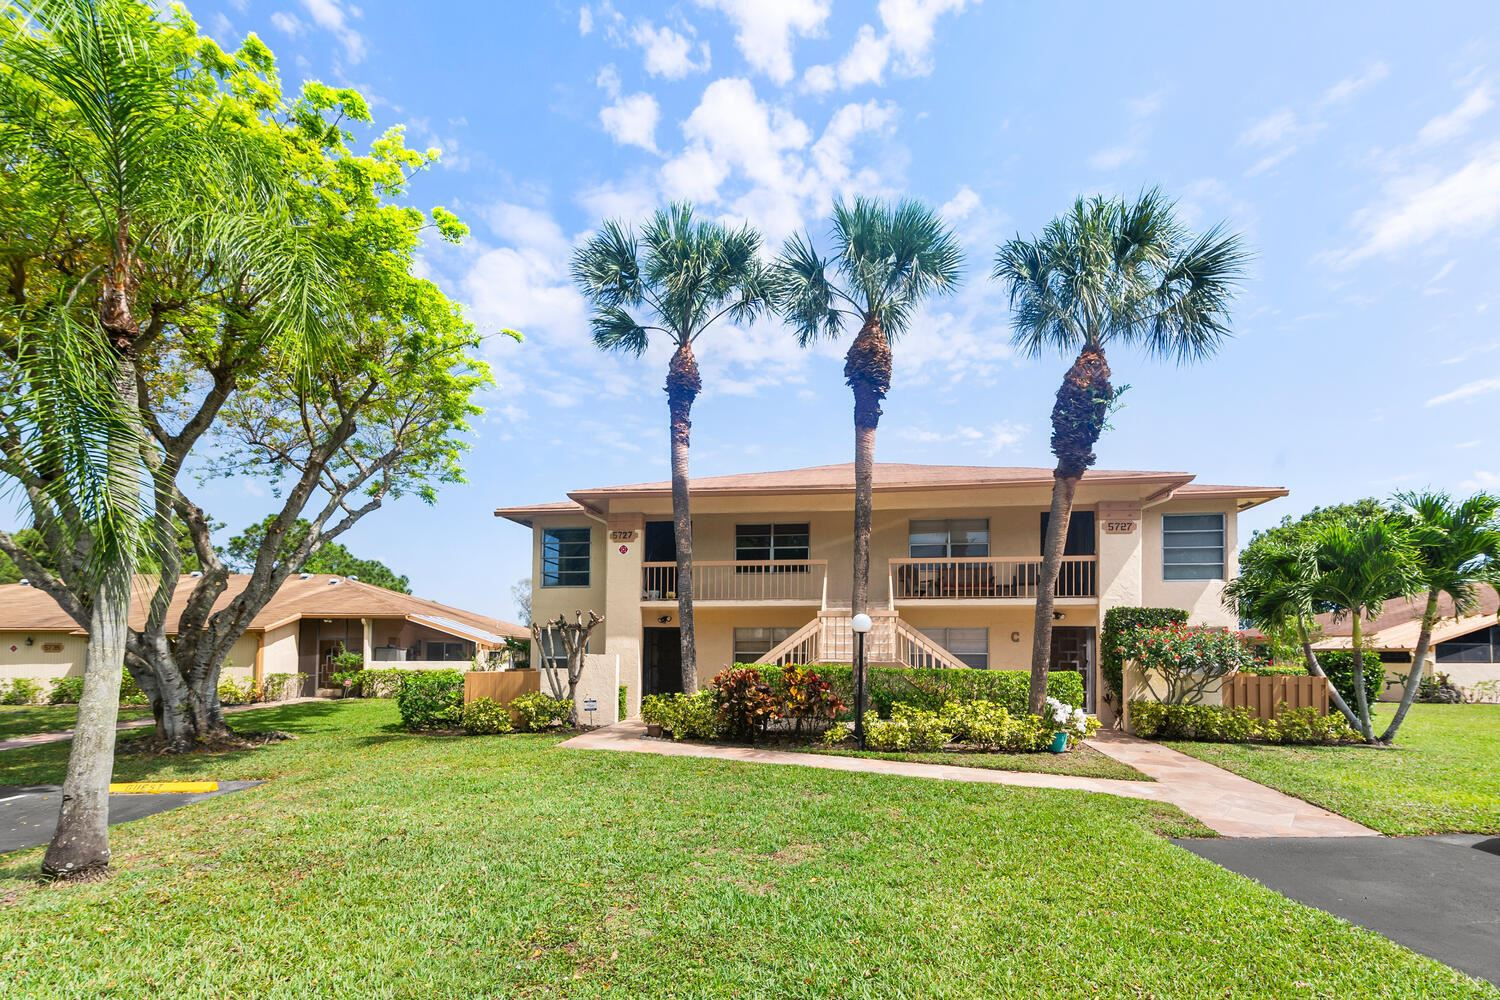 5727 Spindle Palm Court #B, Delray Beach, FL 33484 - MLS#: RX-10711375